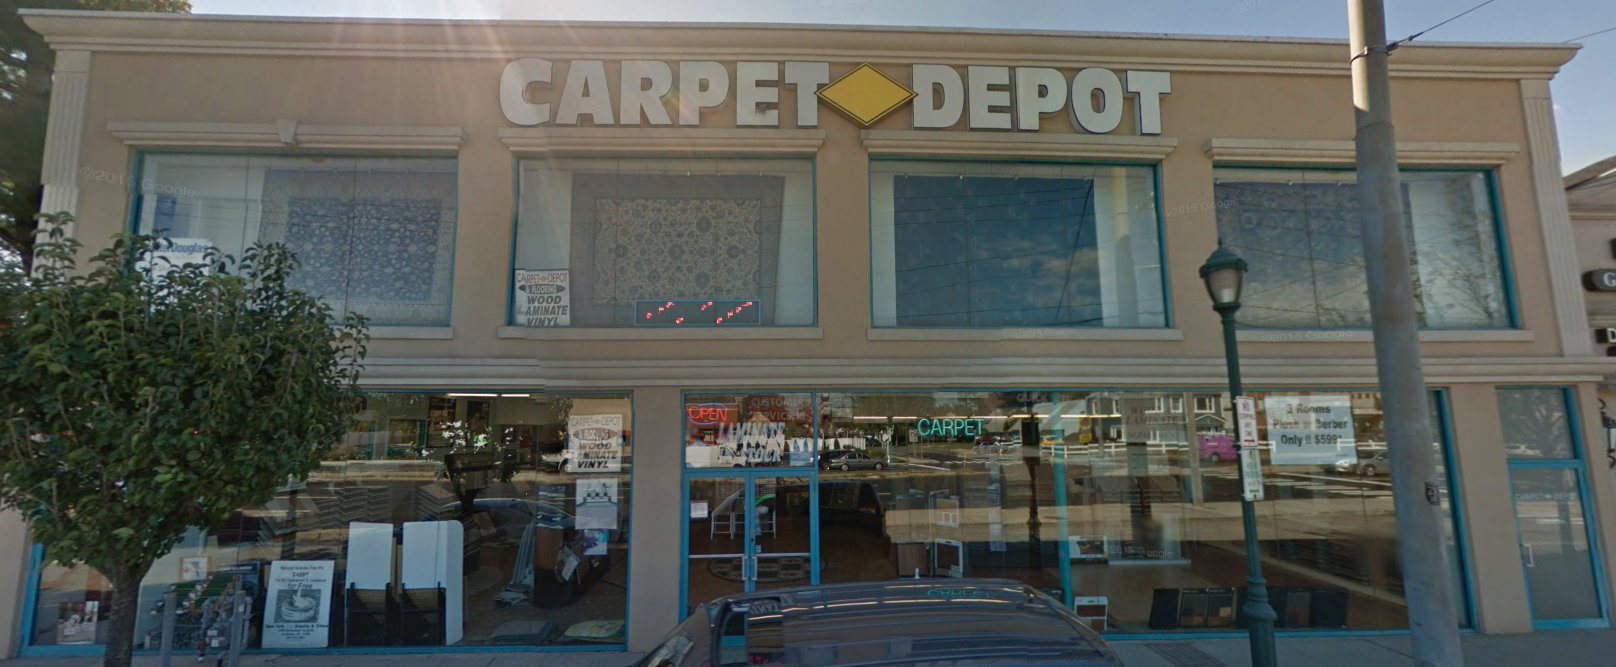 Carpet Depot reviews   Home Services at 3080 Hempstead Turnpike     Carpet Depot reviews   Home Services at 3080 Hempstead Turnpike   Levittown  NY